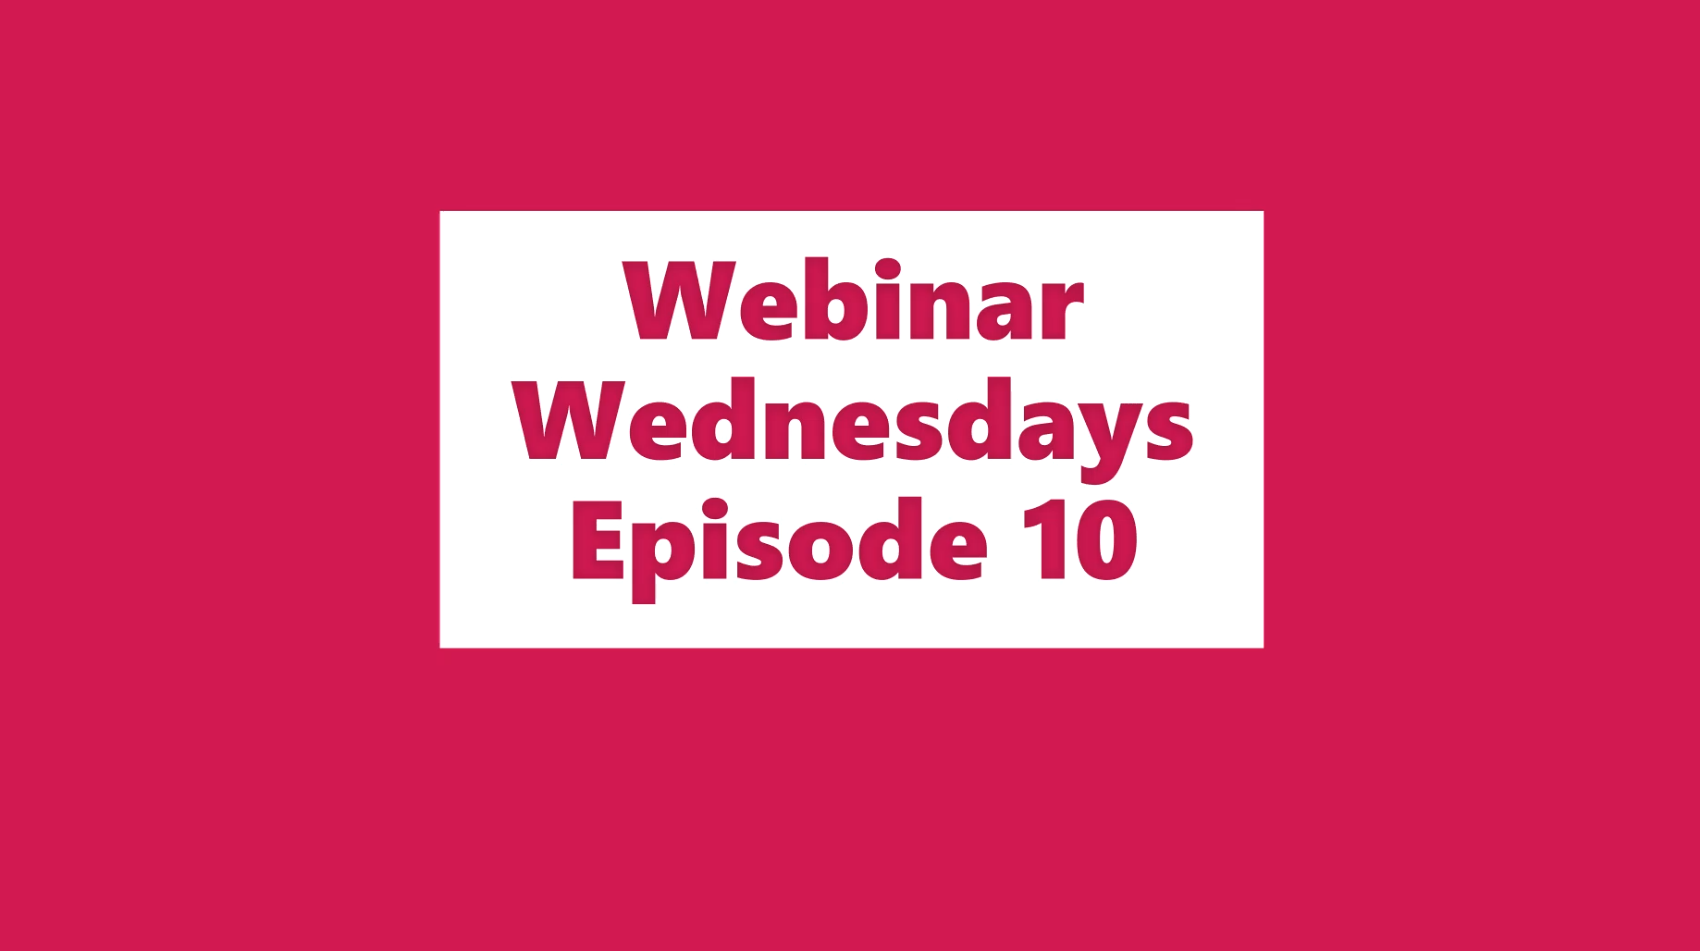 Webinar Wednesdays Episode 10 (a)